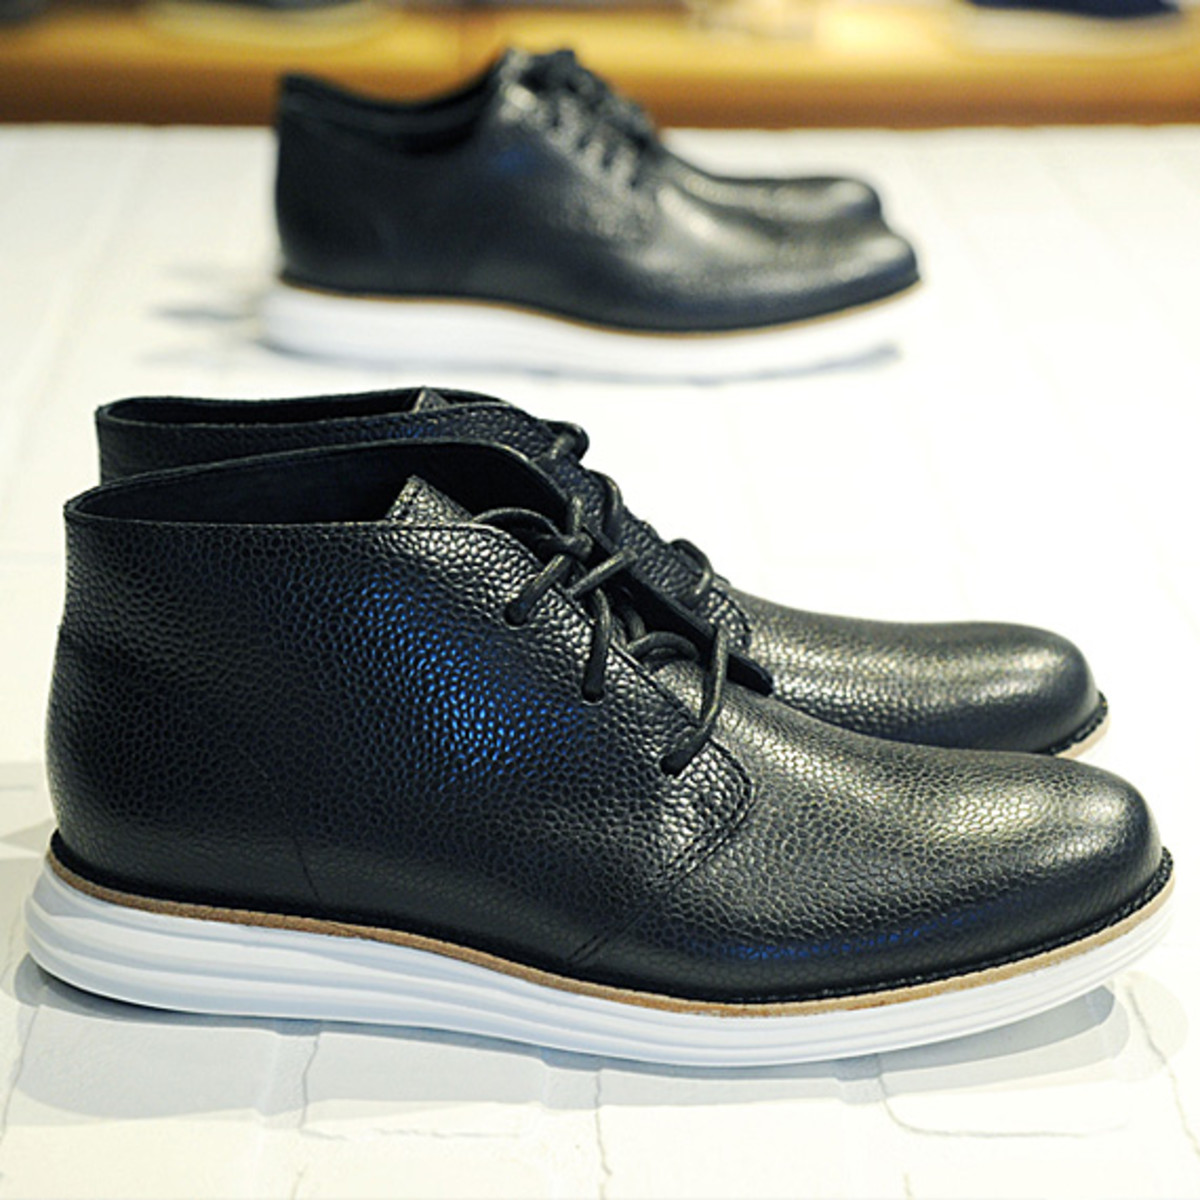 fragment-design-cole-haan-lunargrand-collection-launch-02